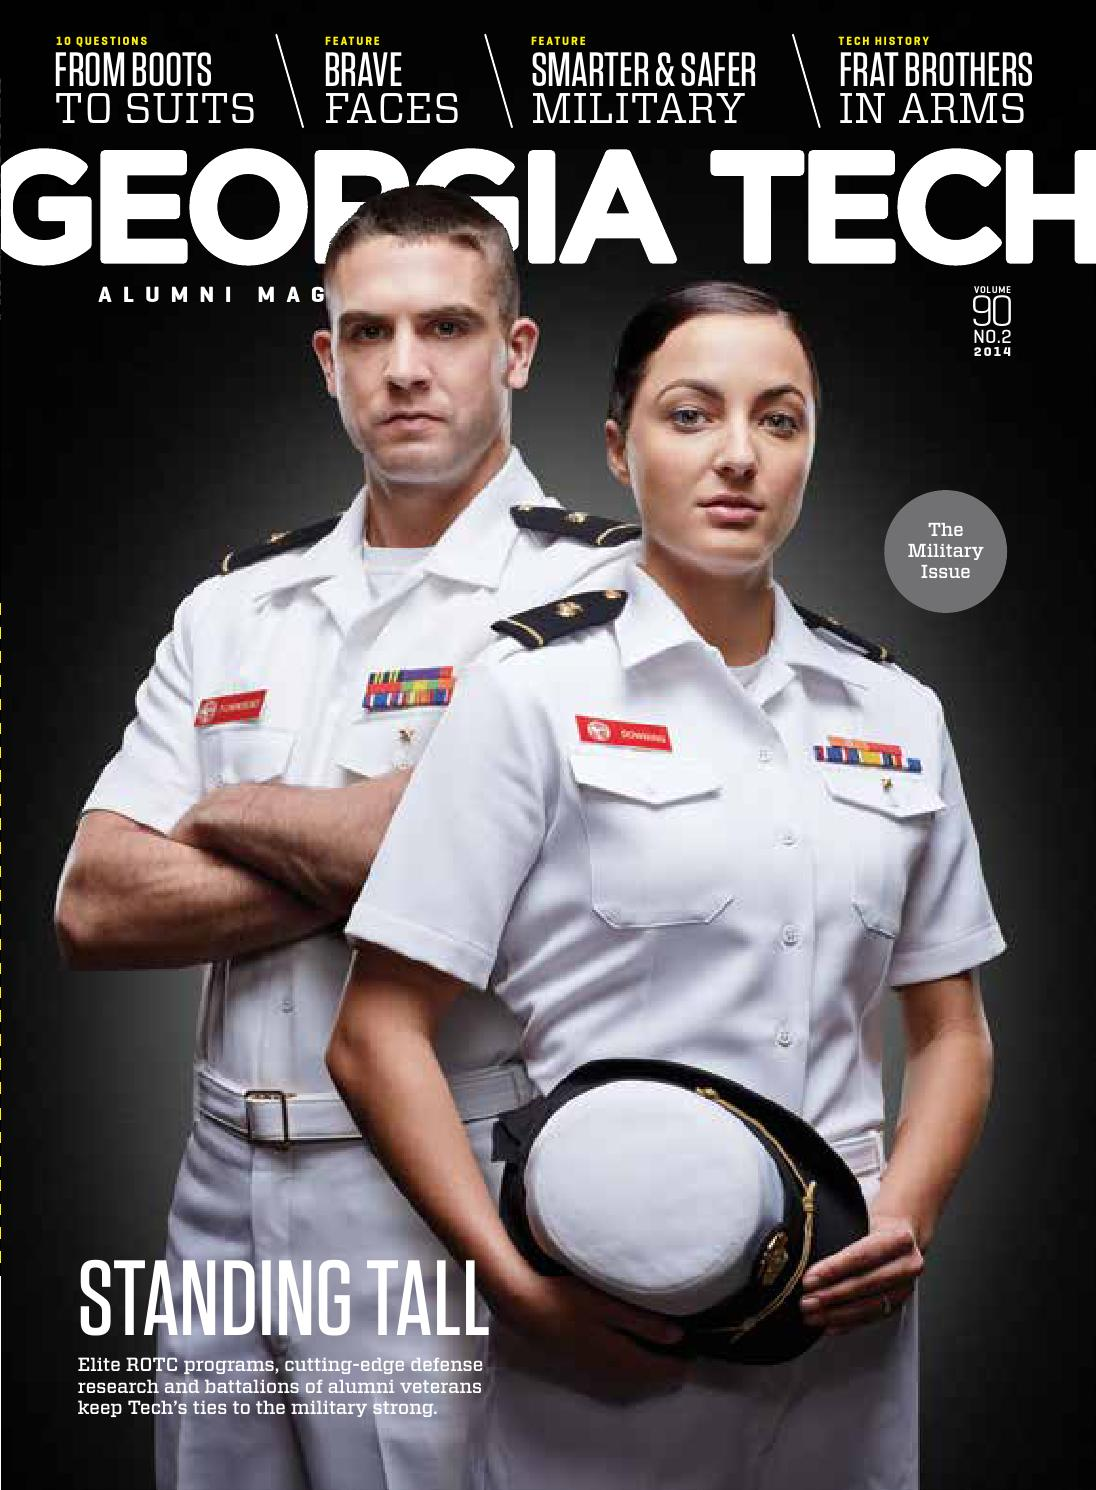 new product 1f5eb c6d1e Georgia Tech Alumni Magazine Vol. 90, No. 2 2014 by Georgia Tech Alumni  Association - issuu